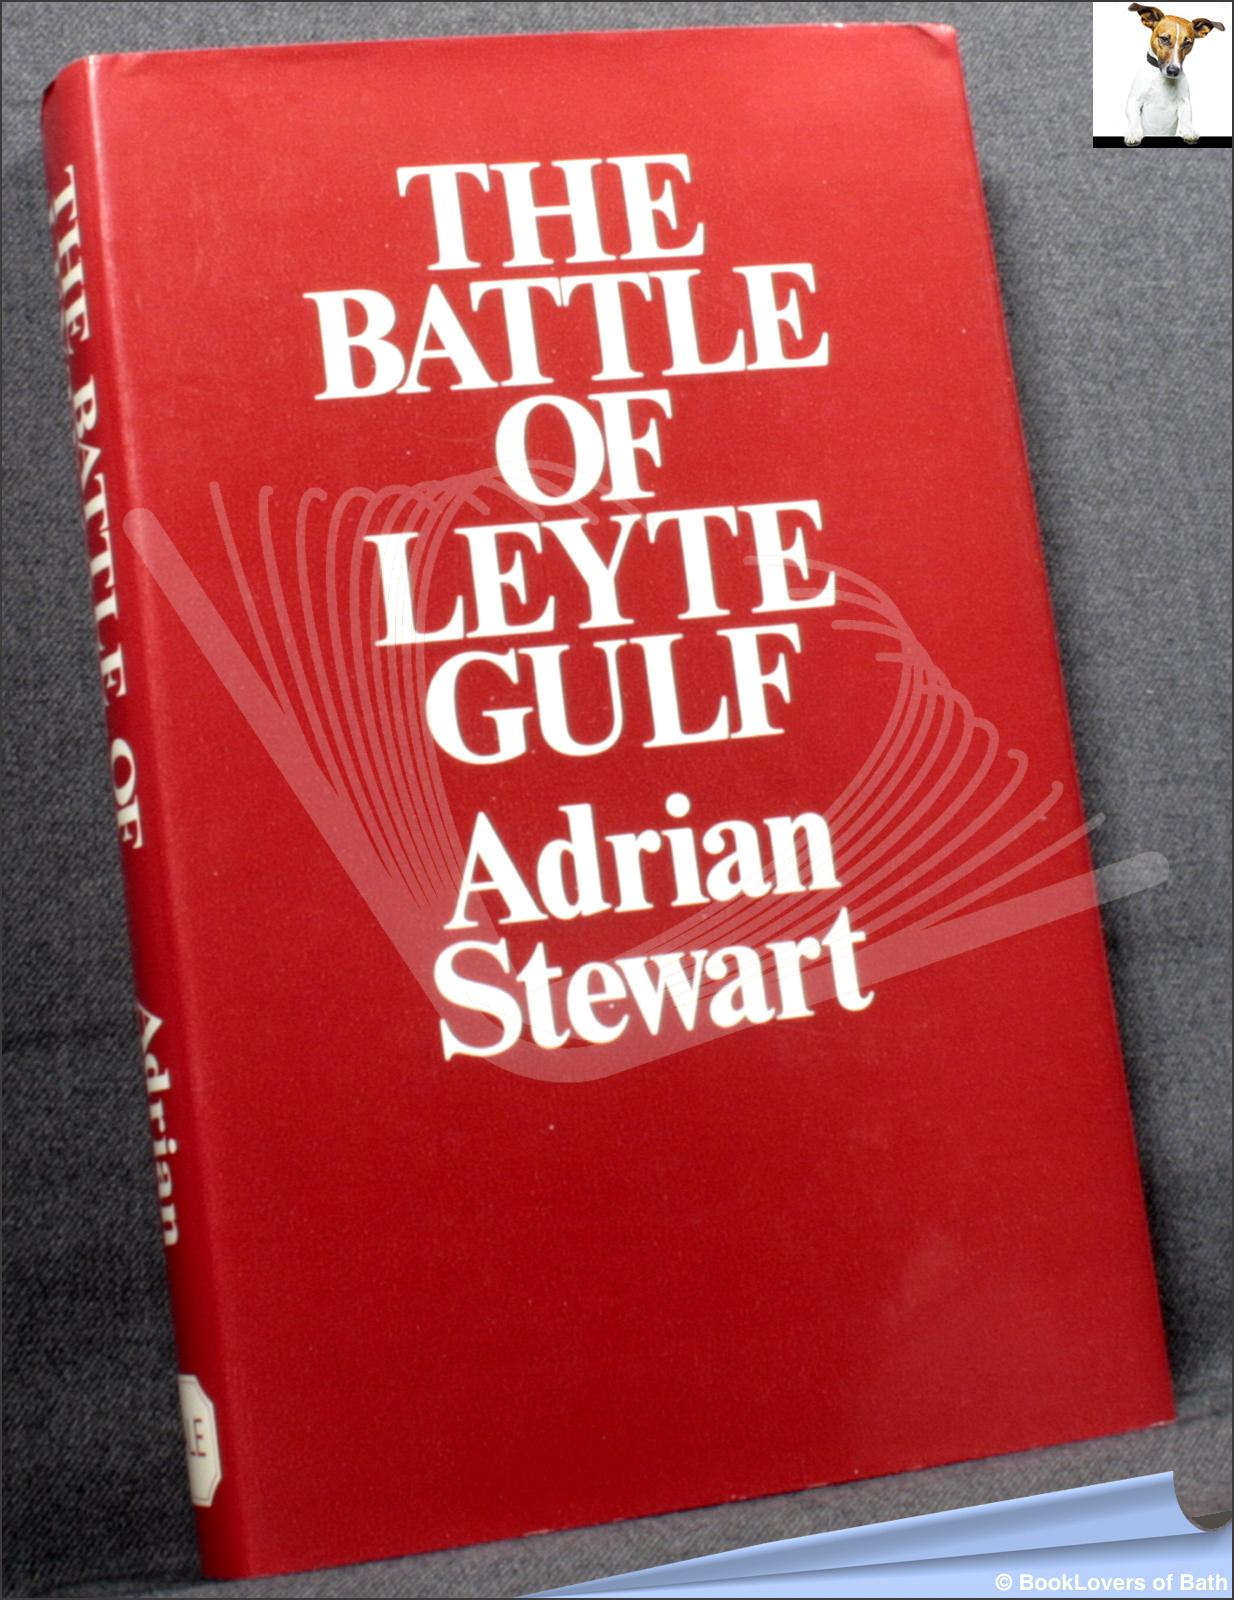 The Battle of Leyte Gulf - Adrian Stewart